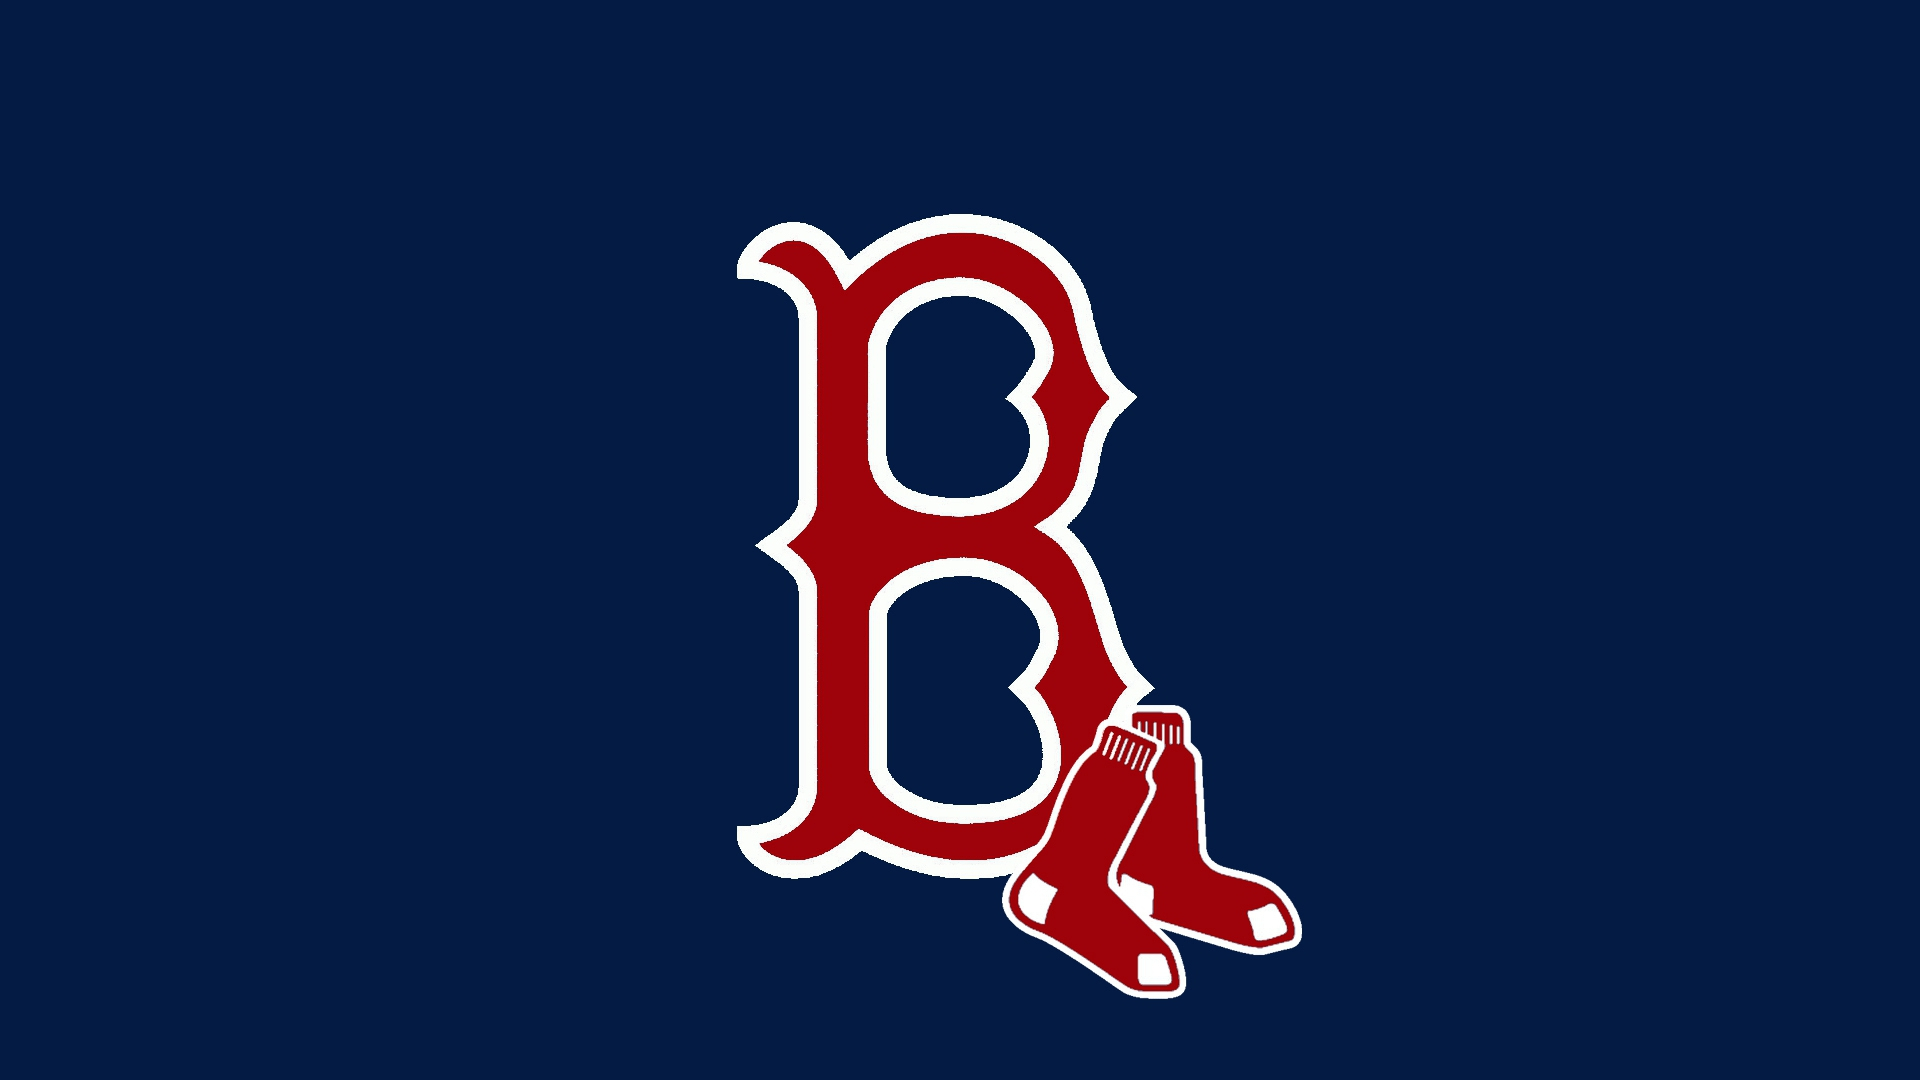 Boston Red Sox Wallpapers Images Photos Pictures Backgrounds 1920x1080